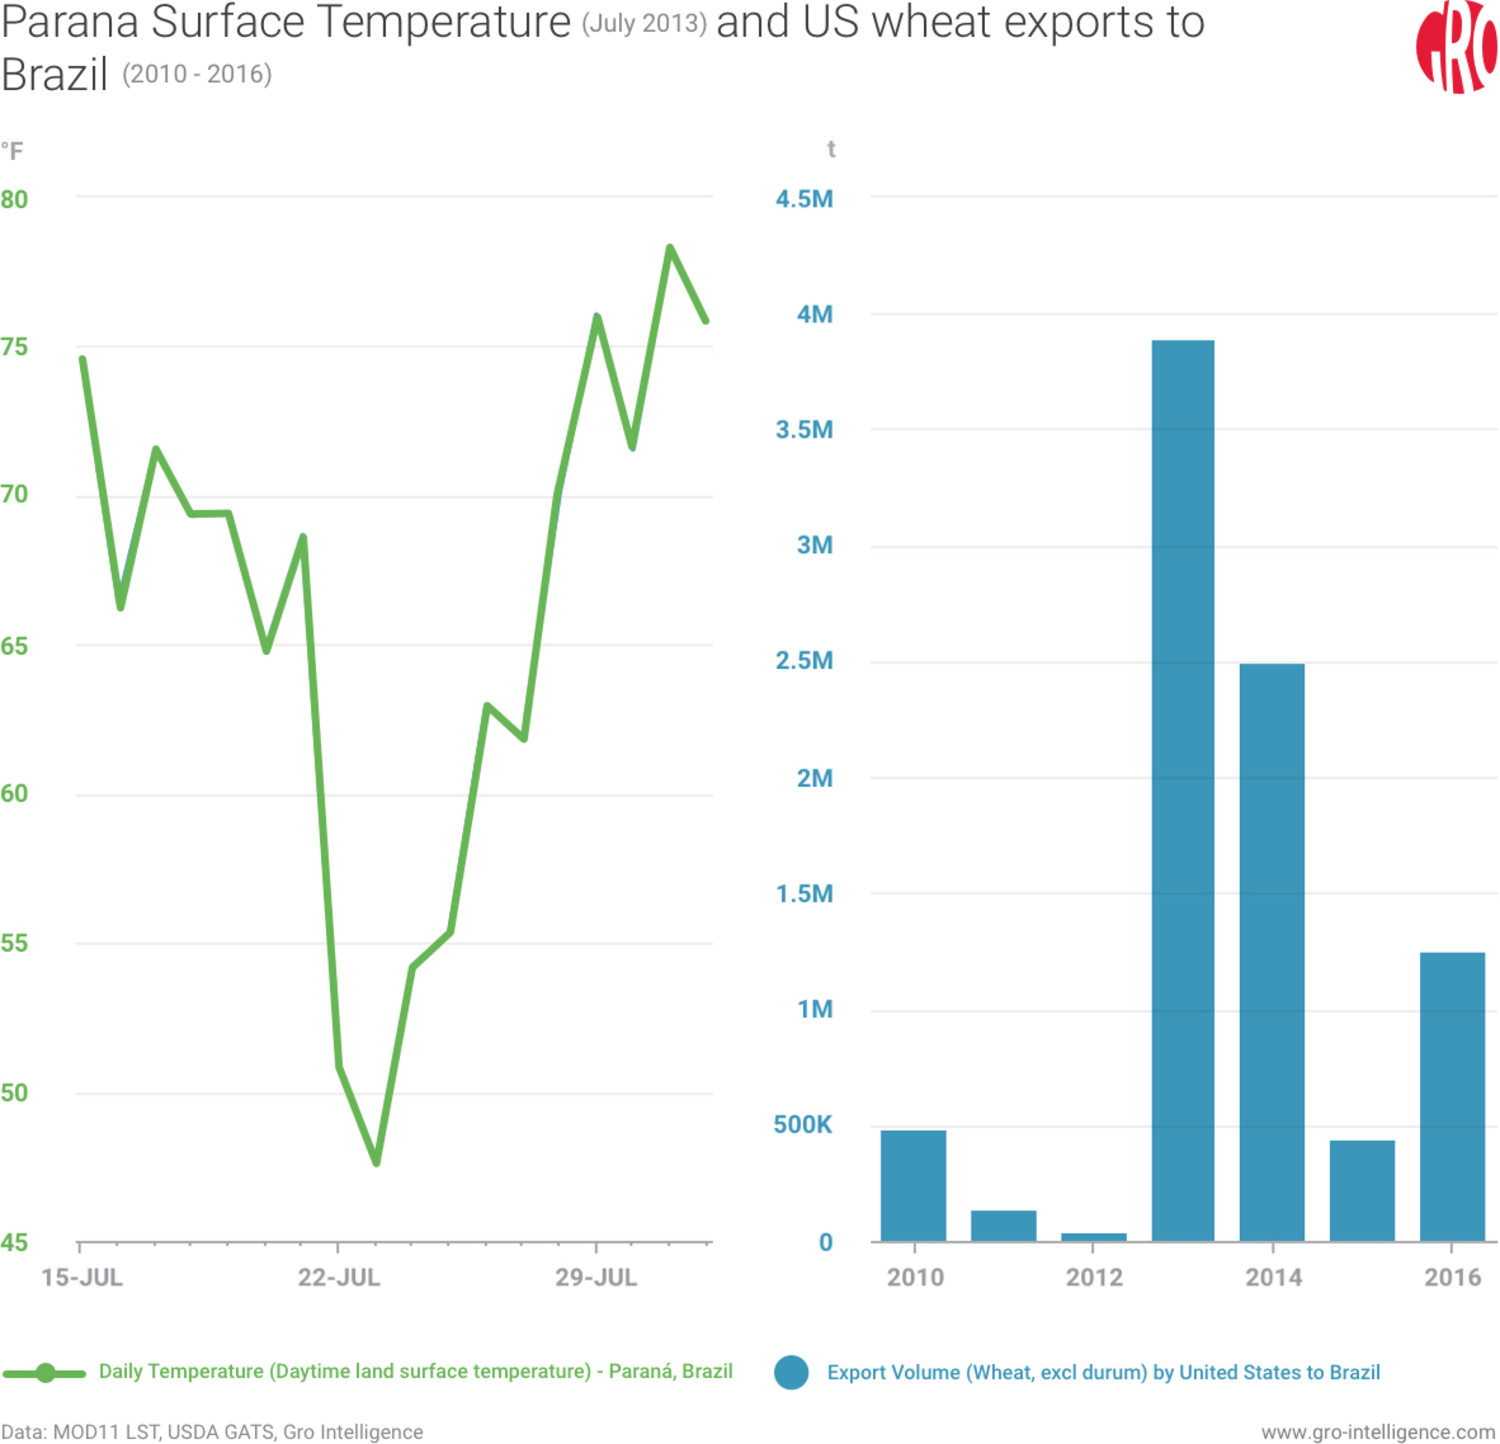 Parana Surface Temperature, US Wheat Exports